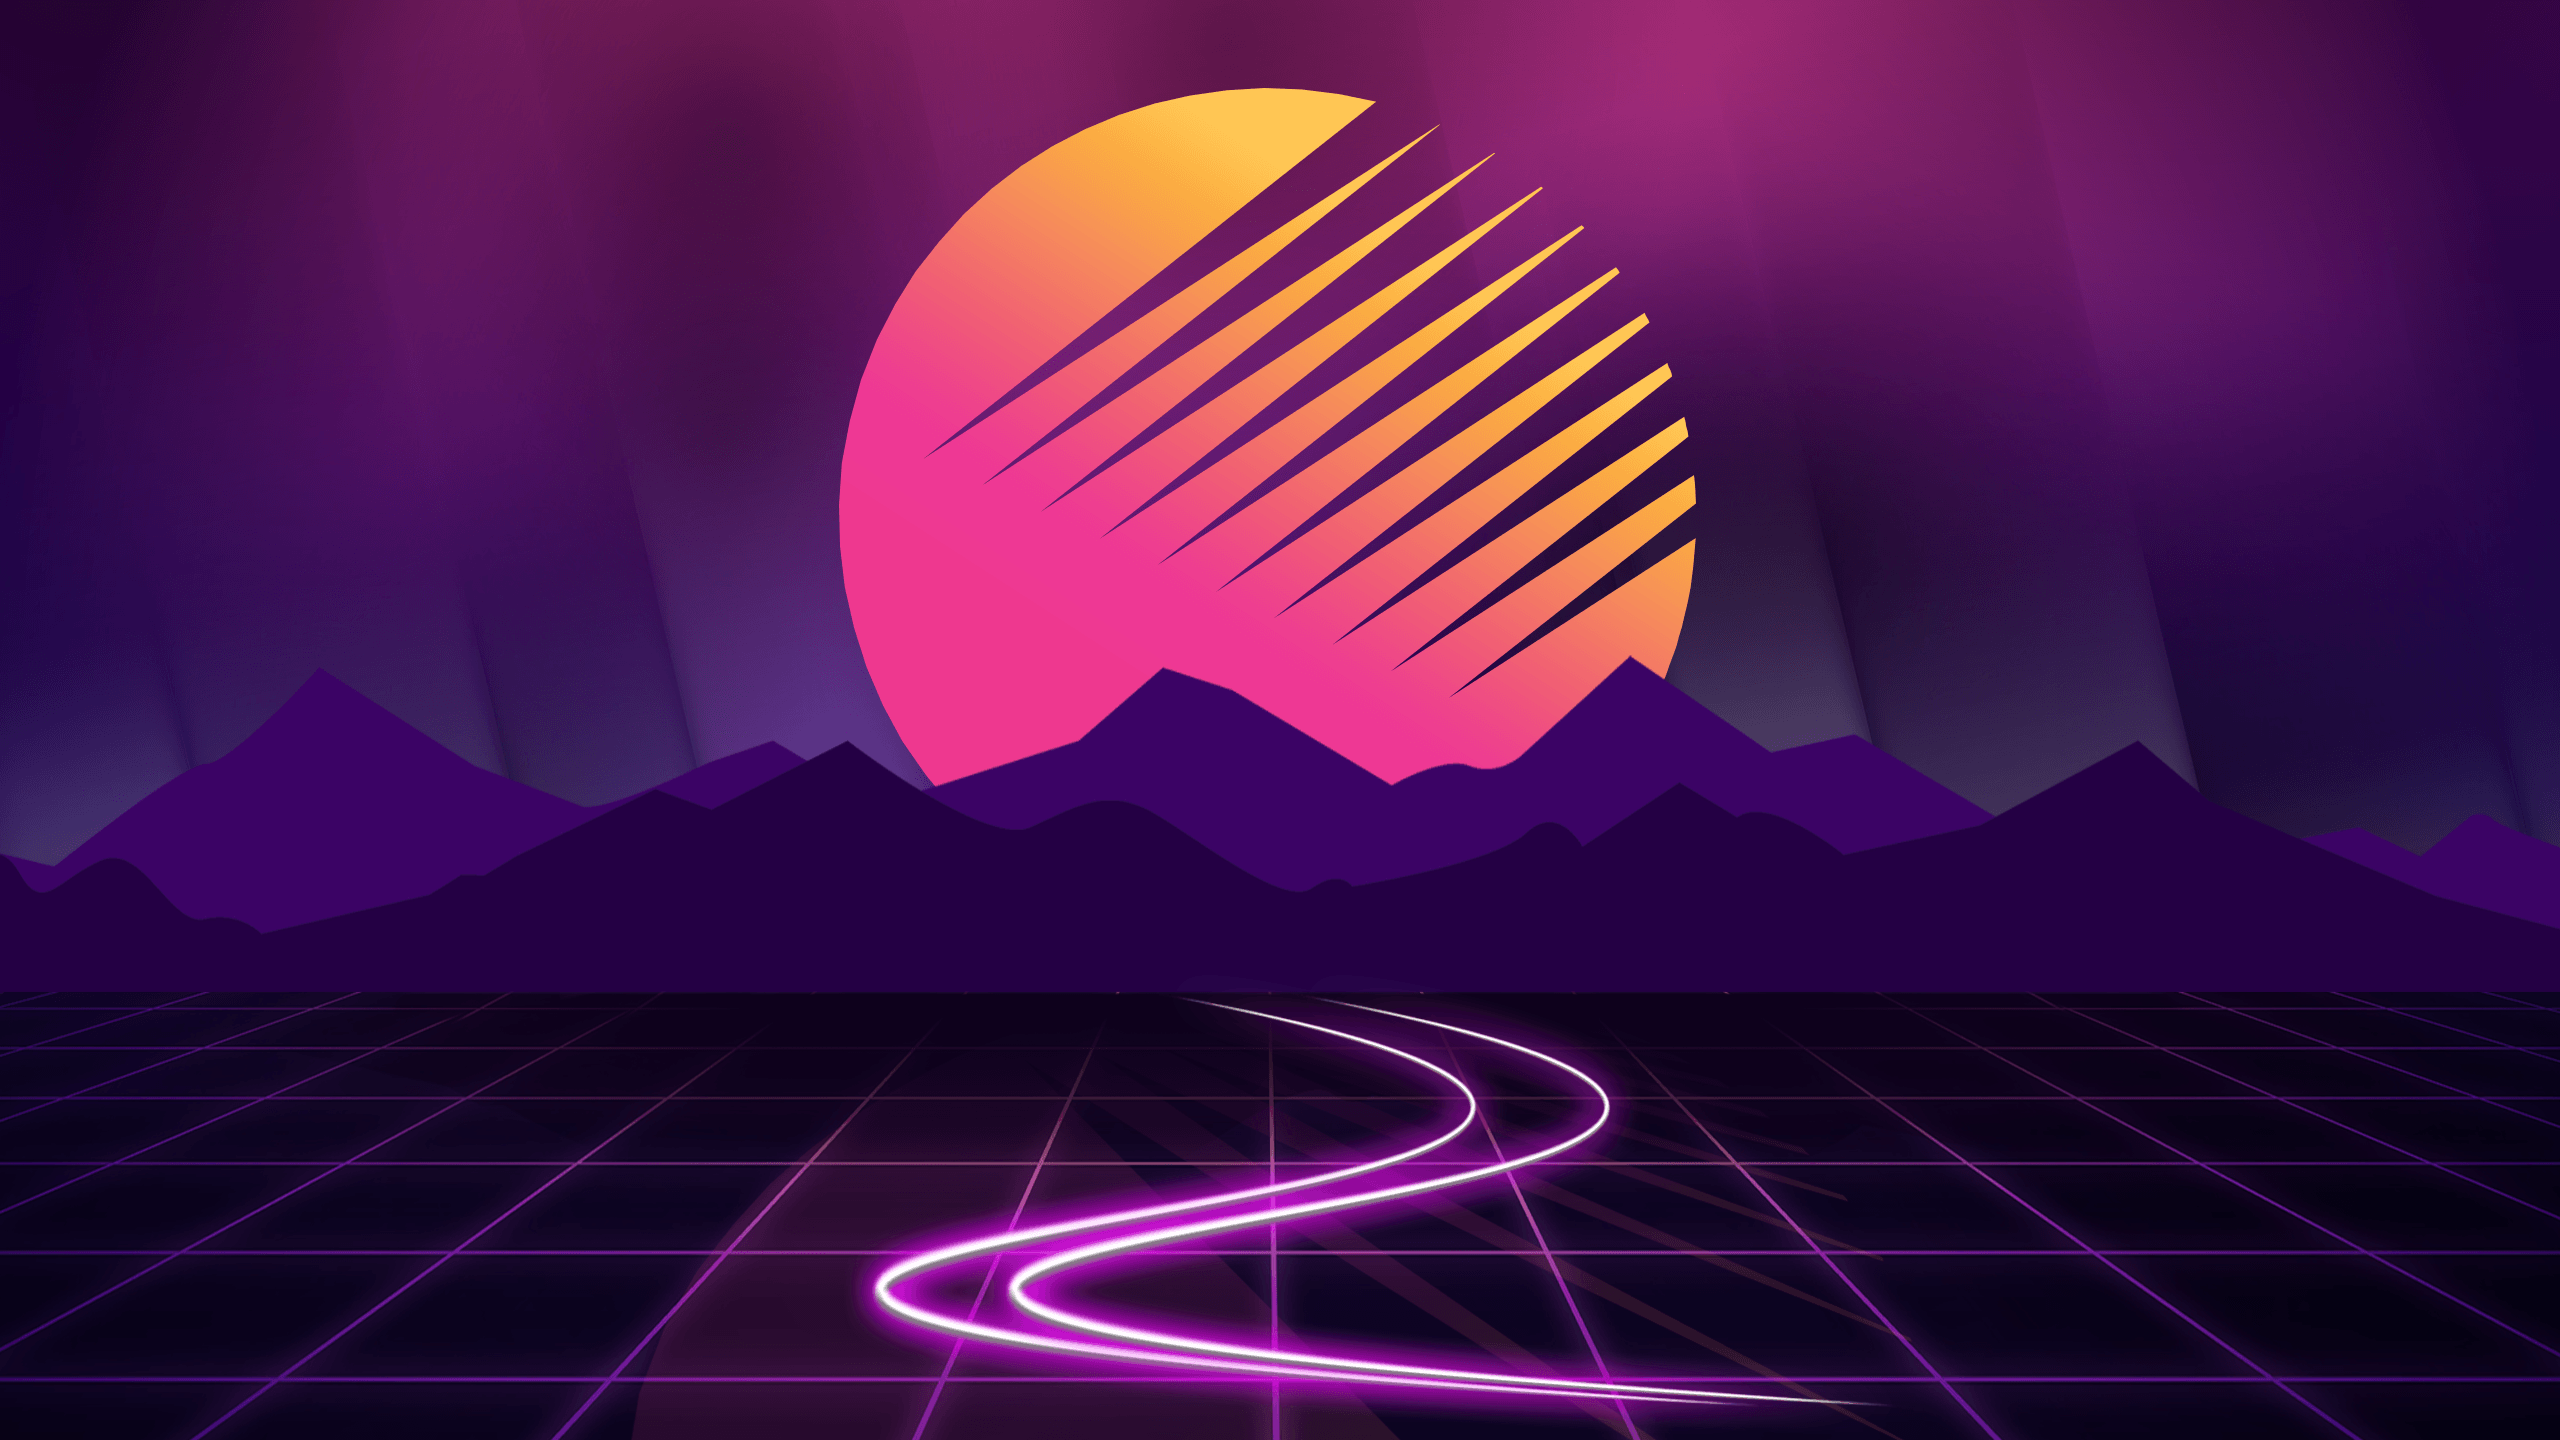 Free Download Aesthetic Vaporwave Wallpaper 104 Images In Collection Page 1 2560x1440 For Your Desktop Mobile Tablet Explore 44 Aesthetic Vaporwave Wallpaper Aesthetic Vaporwave Wallpaper Vaporwave Wallpaper Aesthetic Wallpaper